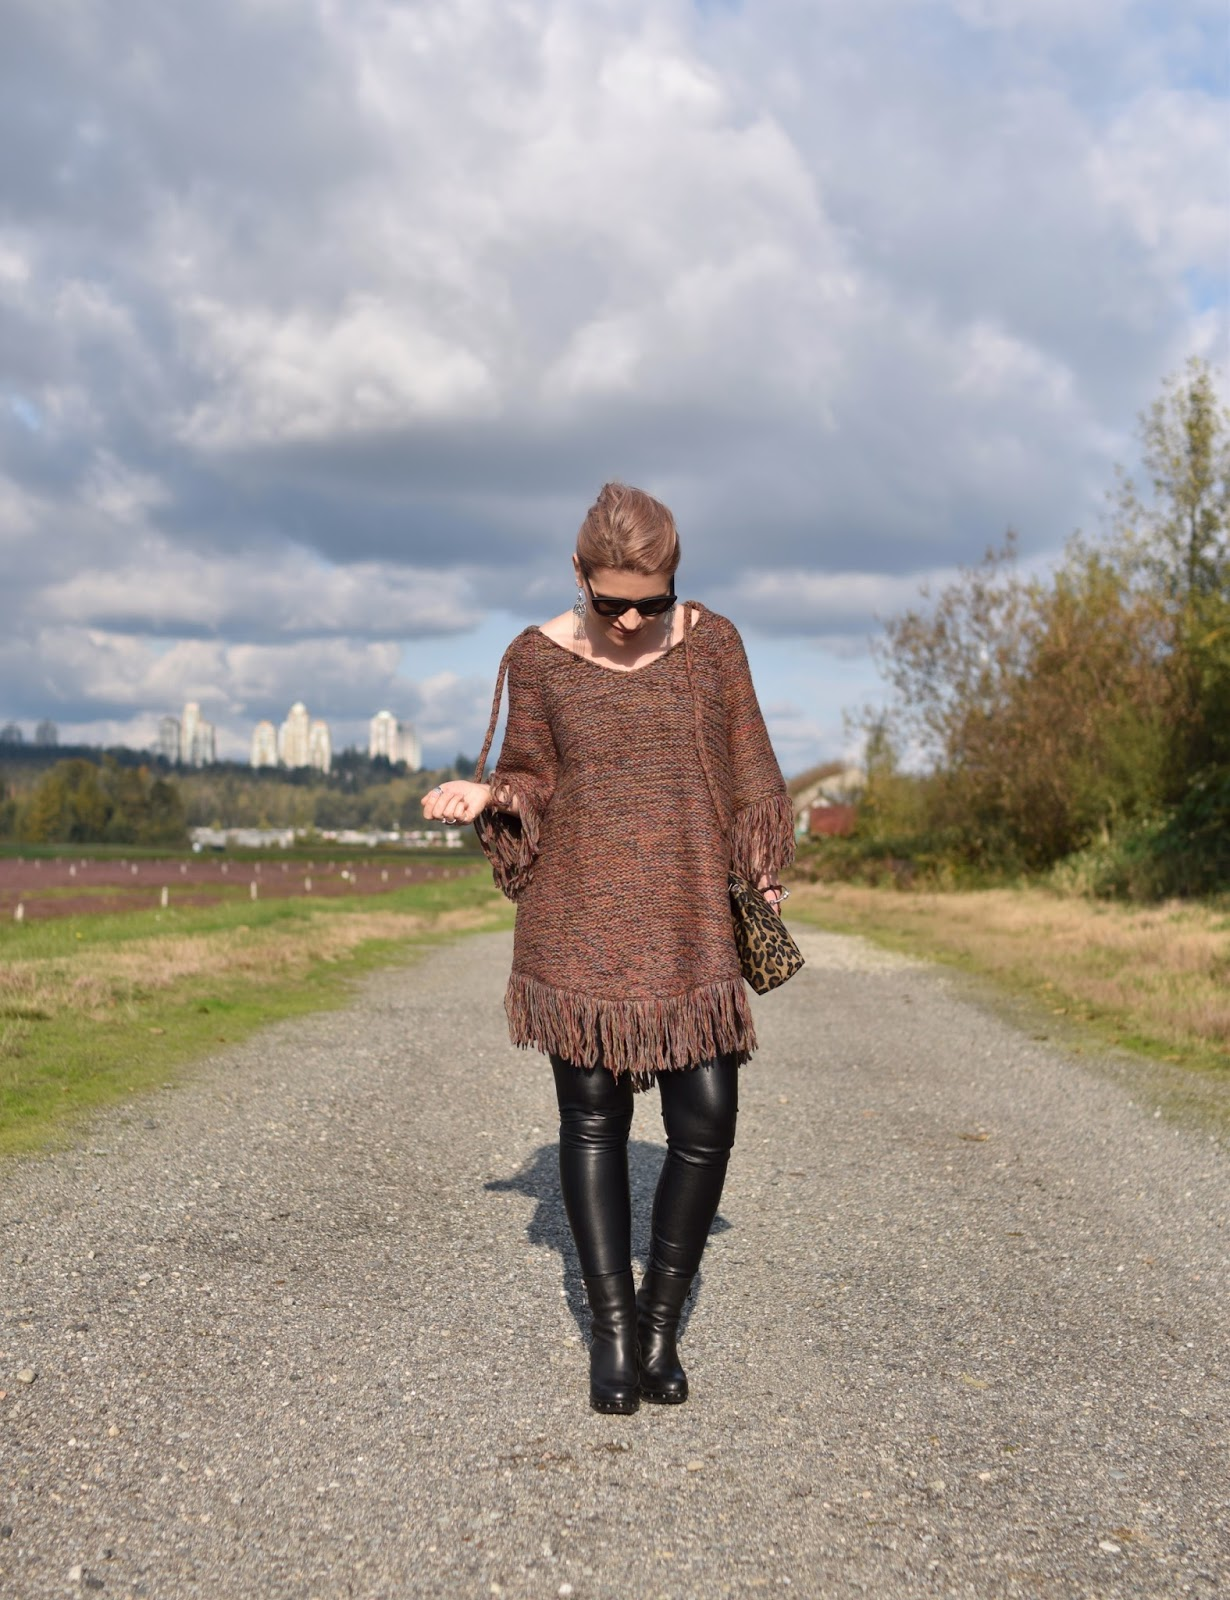 Outfit inspiration c/o Monika Faulkner - fringy poncho-sweater, vegan leather leggings, and platform booties